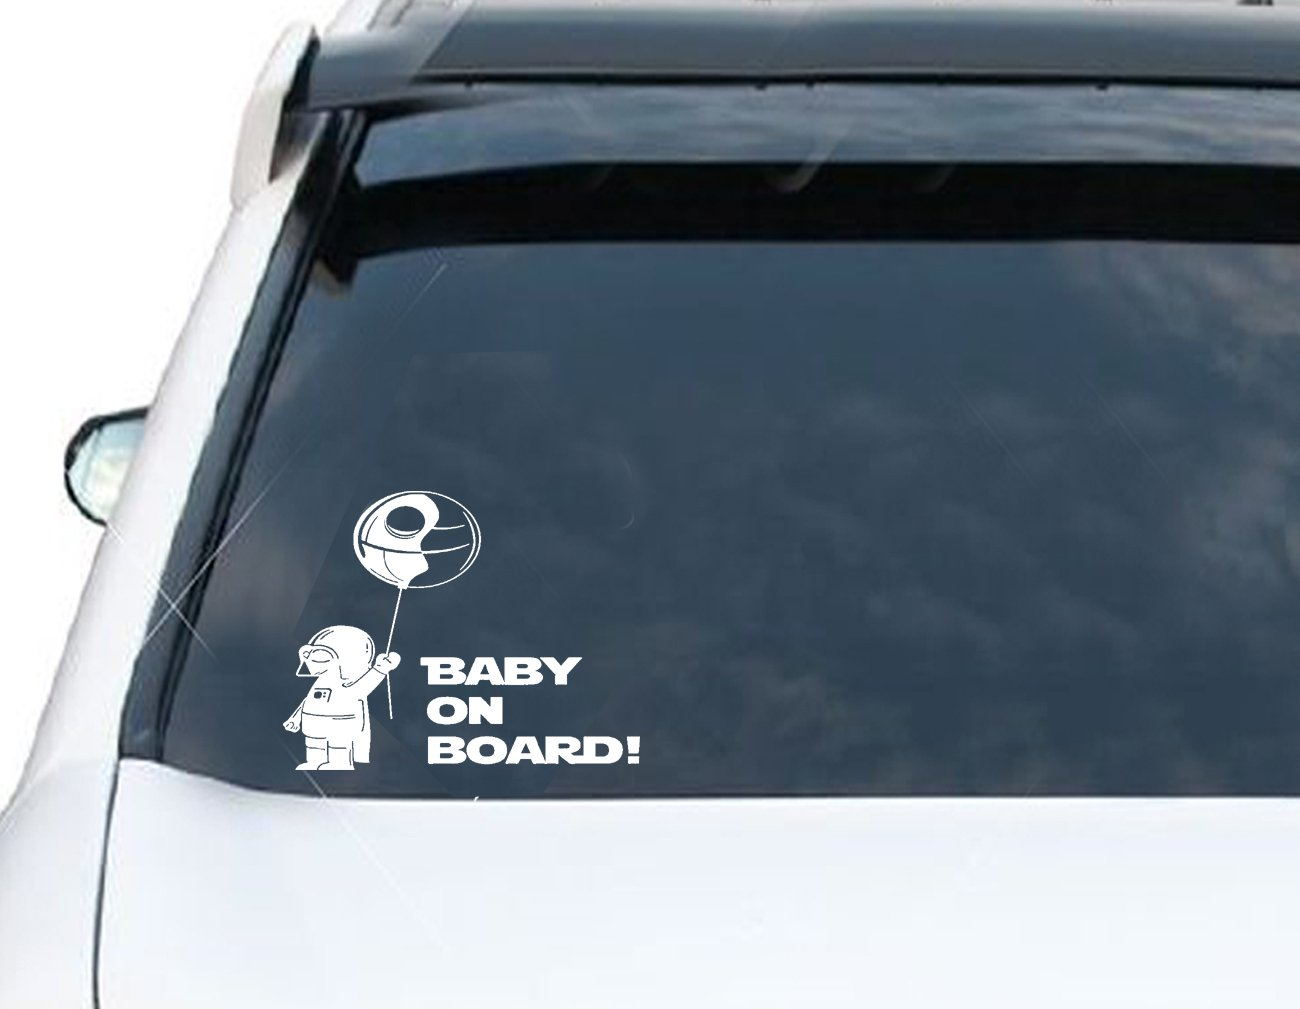 Darth Vader Baby on board Car Decal Sticker 8in X 8in BLACK or WHITE